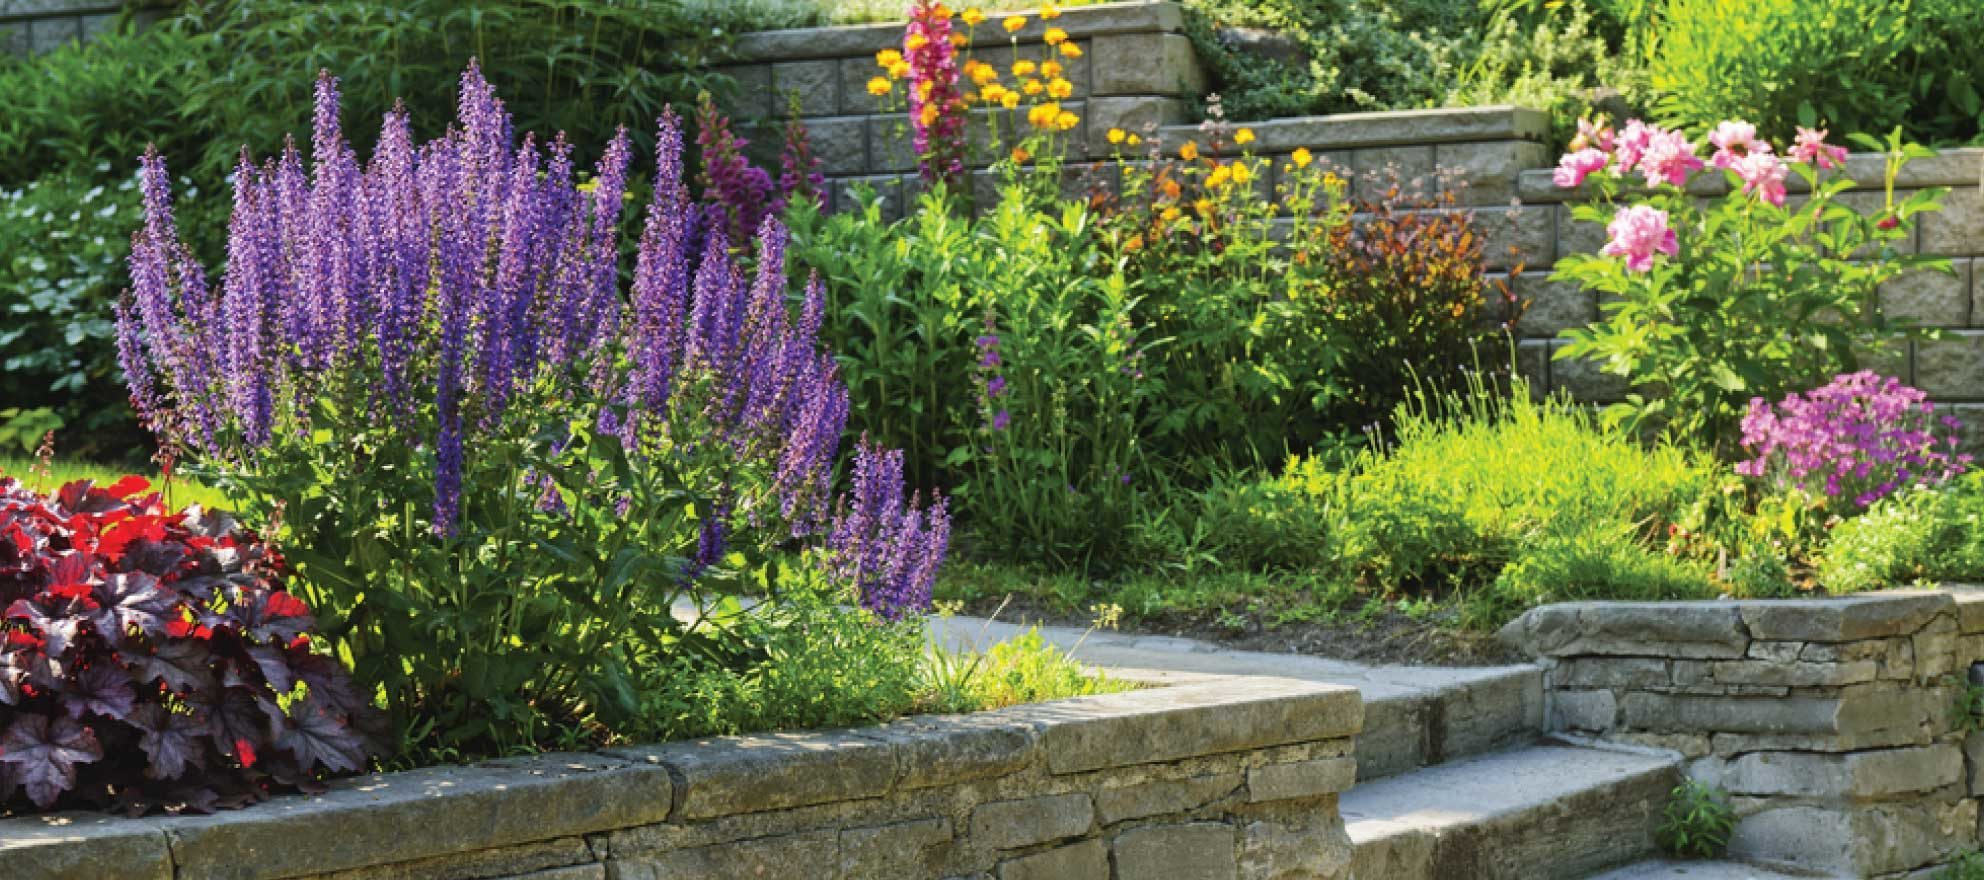 Trying to boost your listing's value? Add a garden